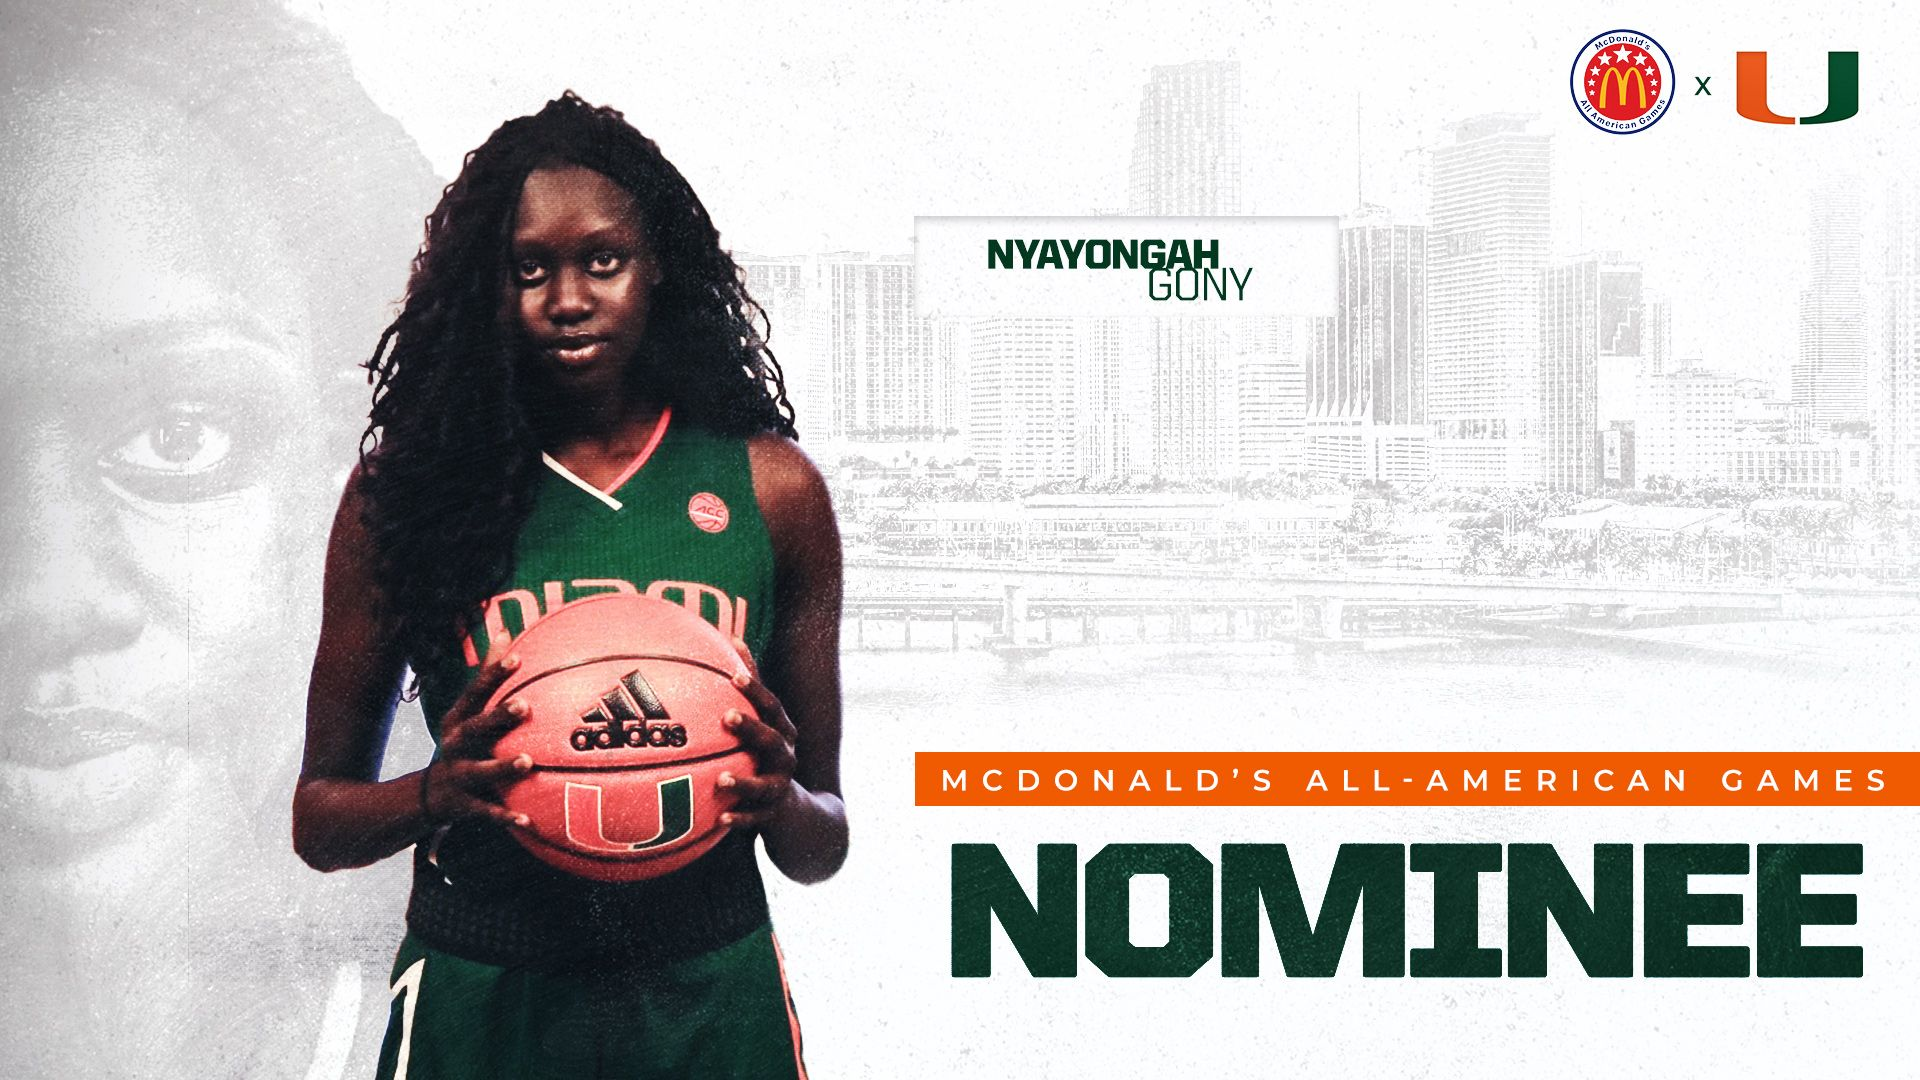 2020 Signee Gony Named McDonald's All-American Games Nominee